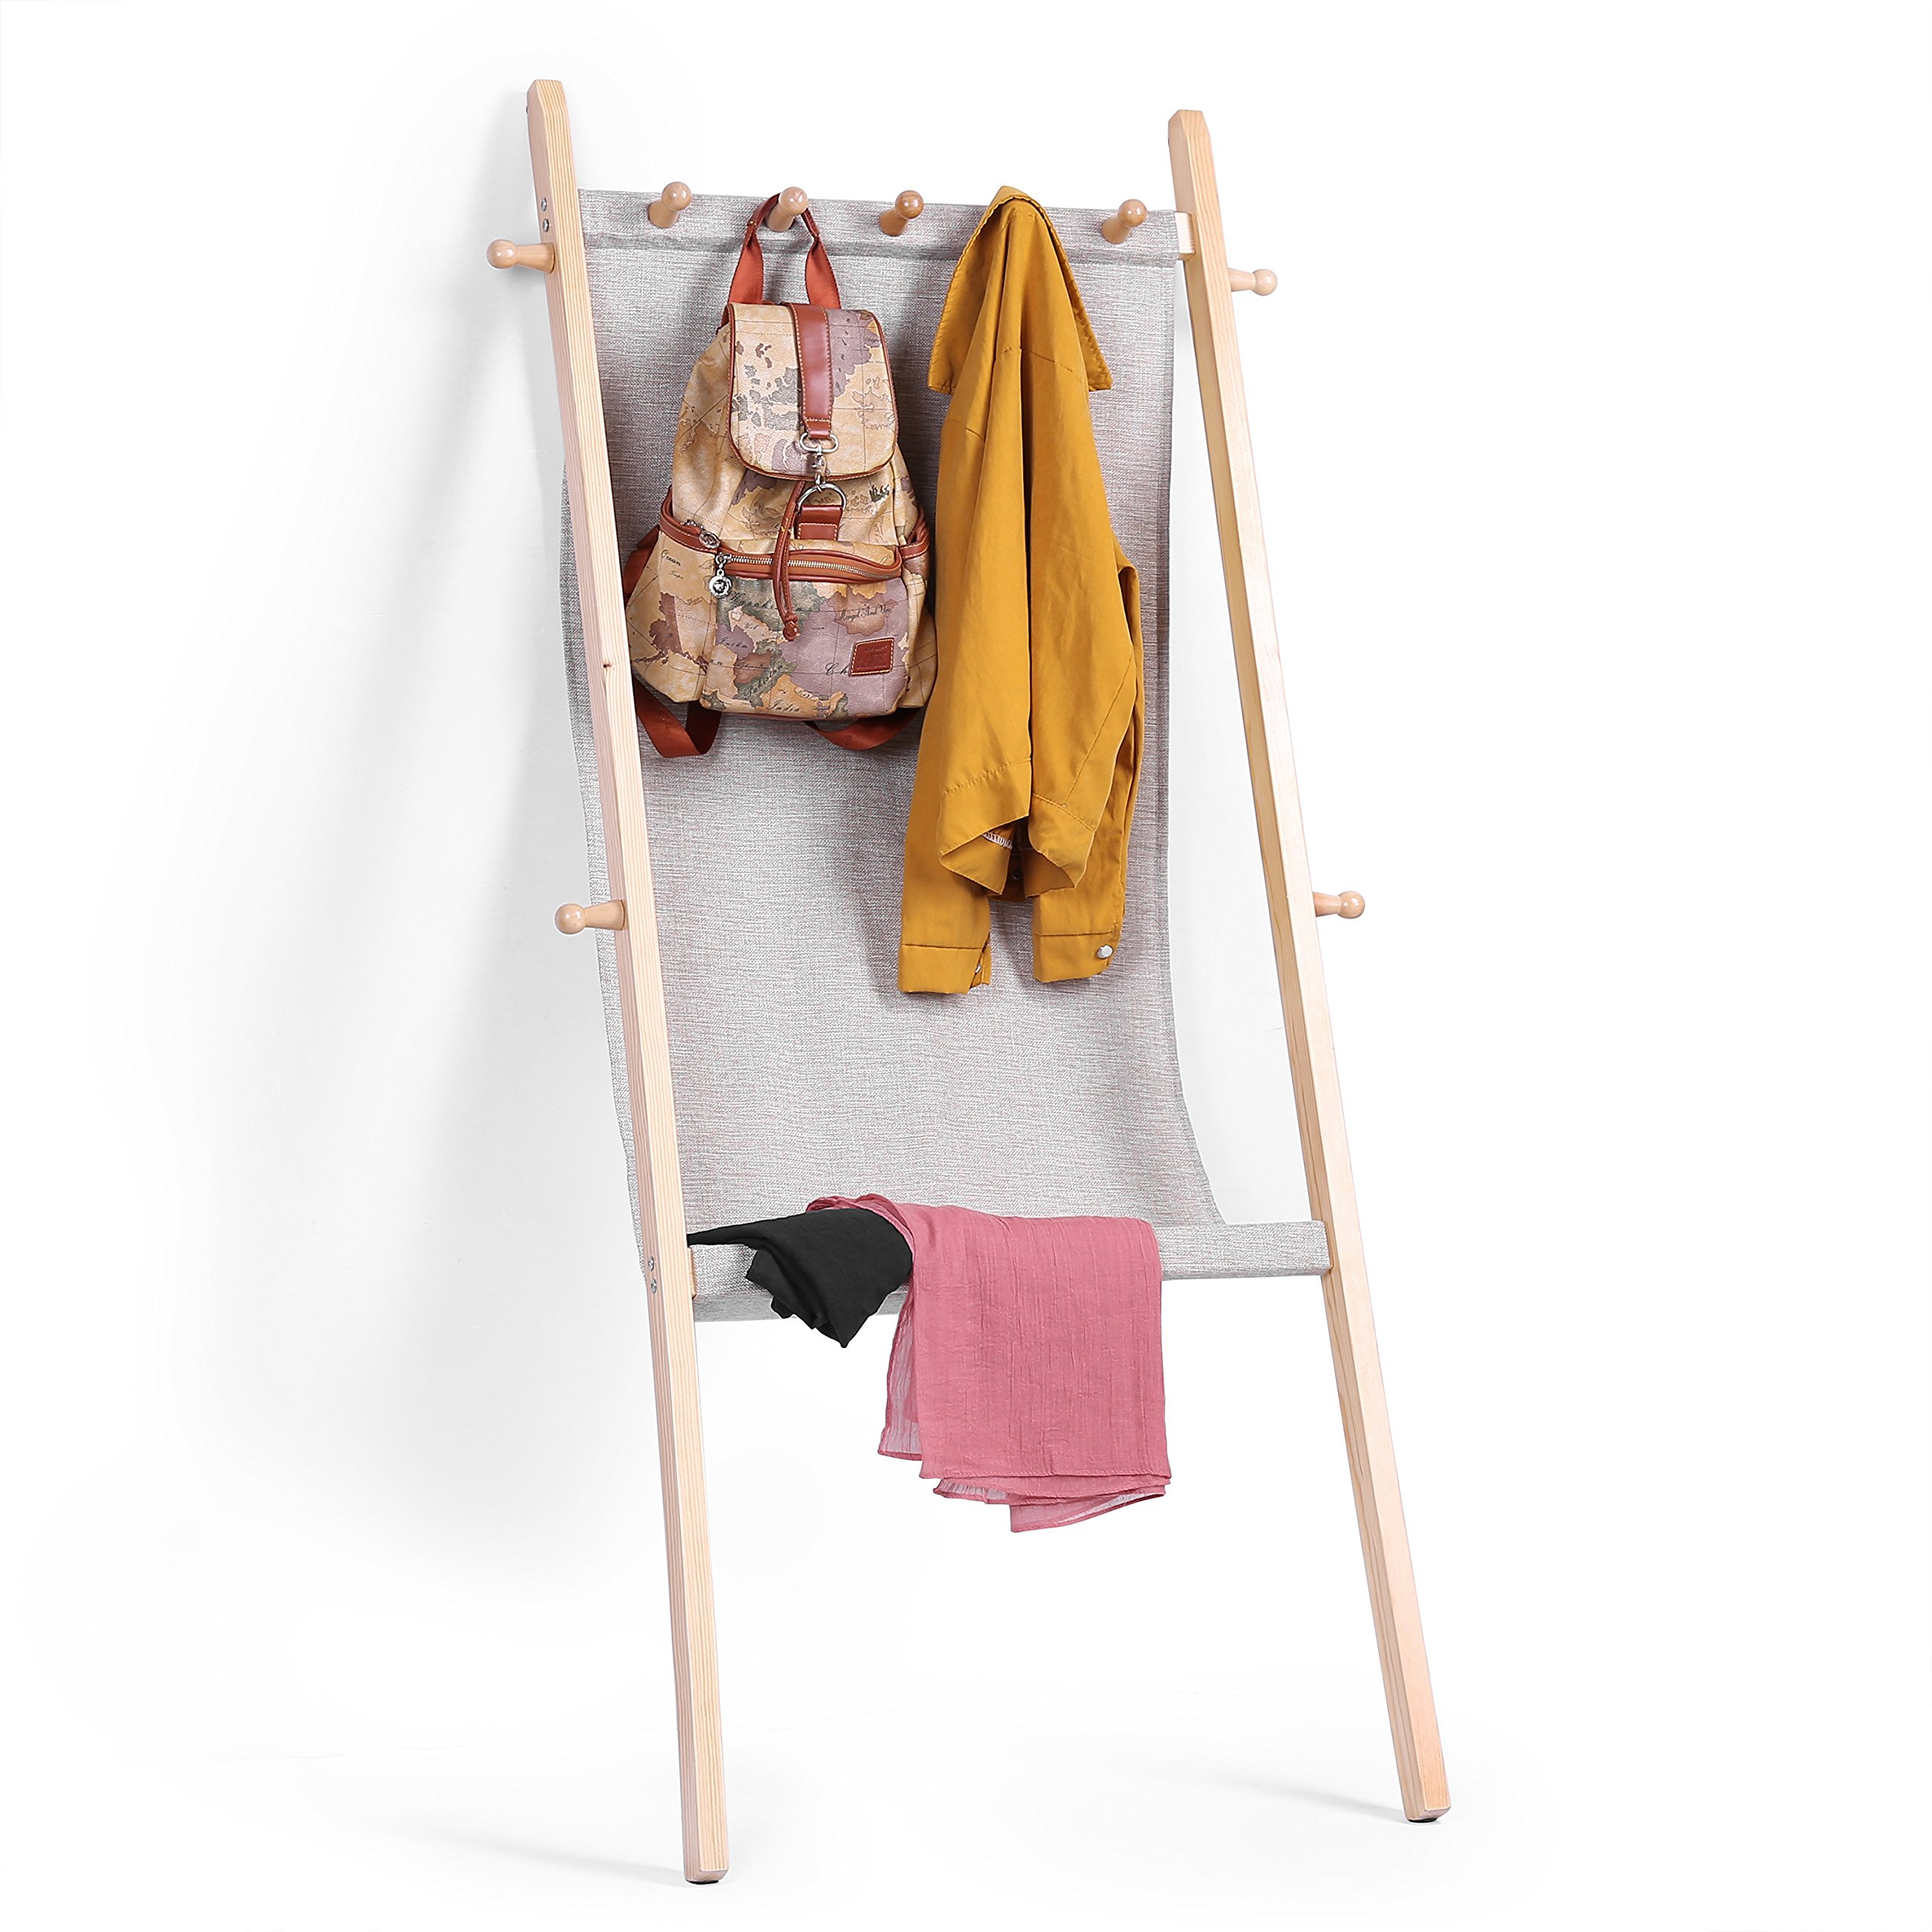 MyGift Wooden Leaning Garment Display Rack with Fabric Sling & 9 Peg Hooks